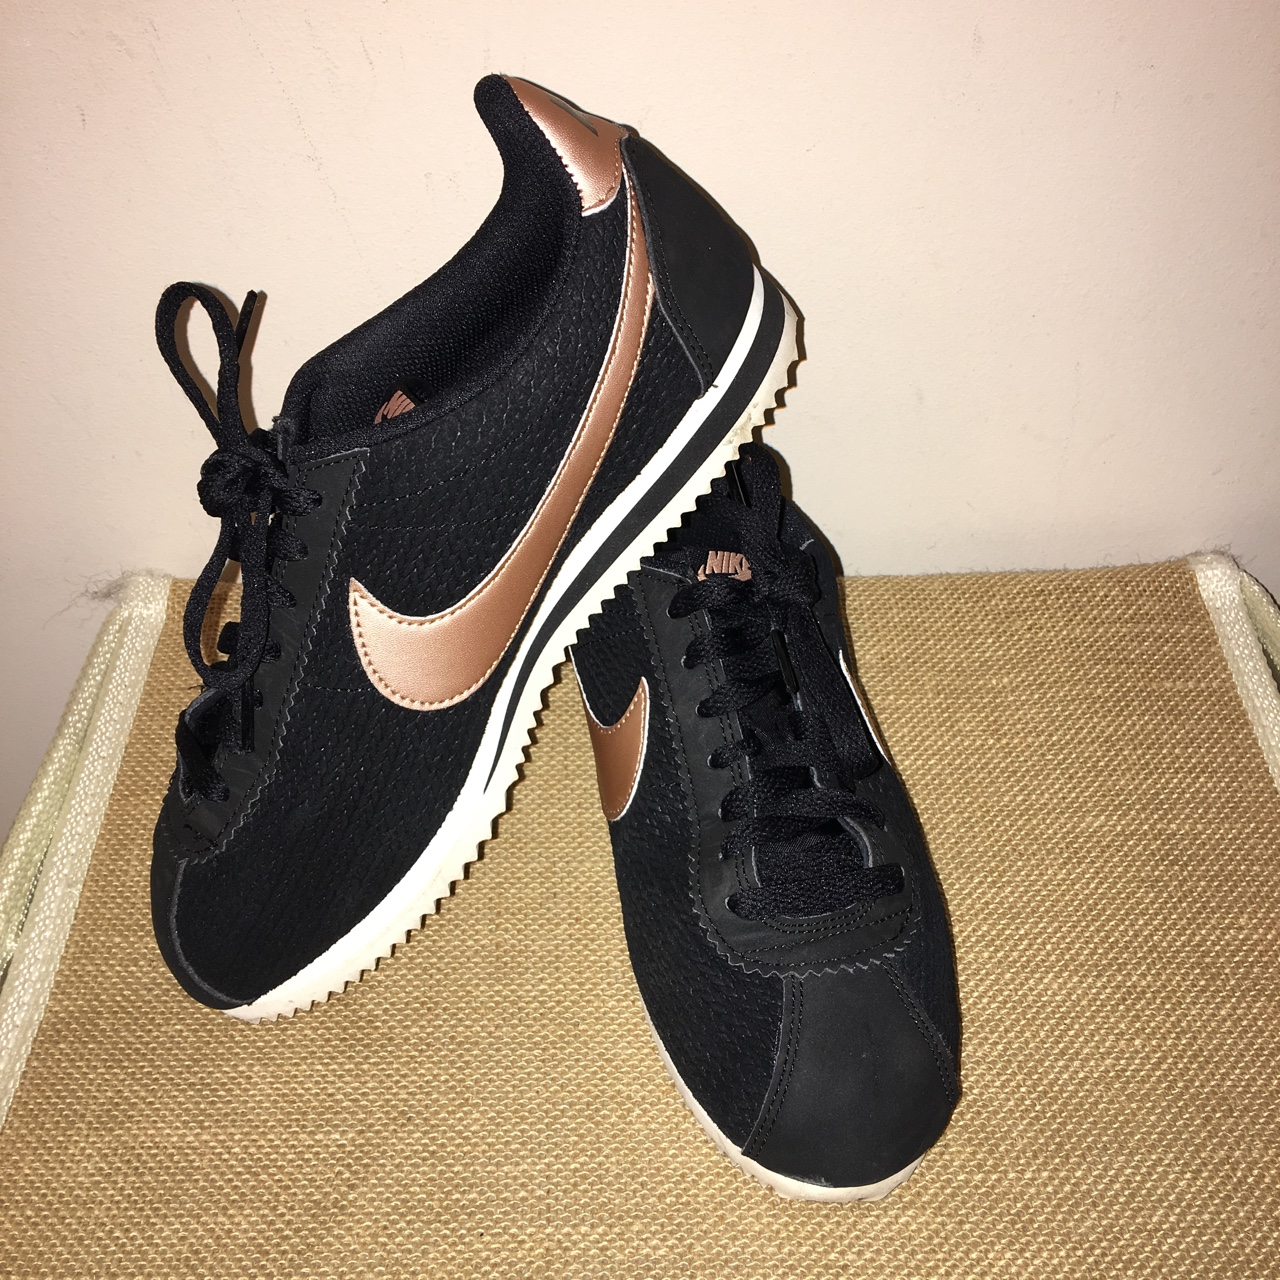 new products 8c448 02017 Nike Cortez, black and rose gold. Size 5. RRP £75.... - Depop